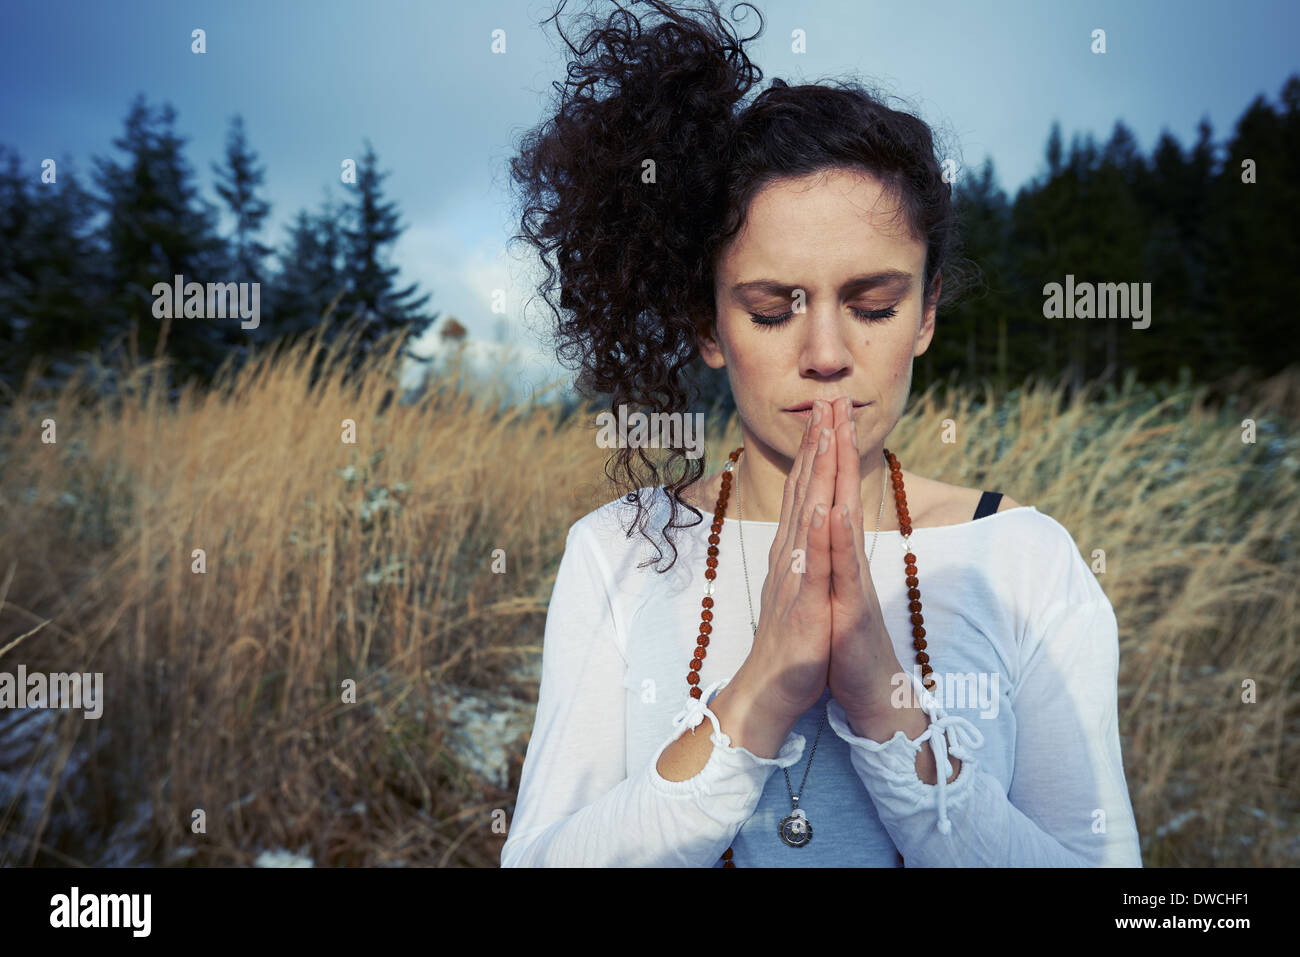 Mid adult woman meditating in forest Photo Stock